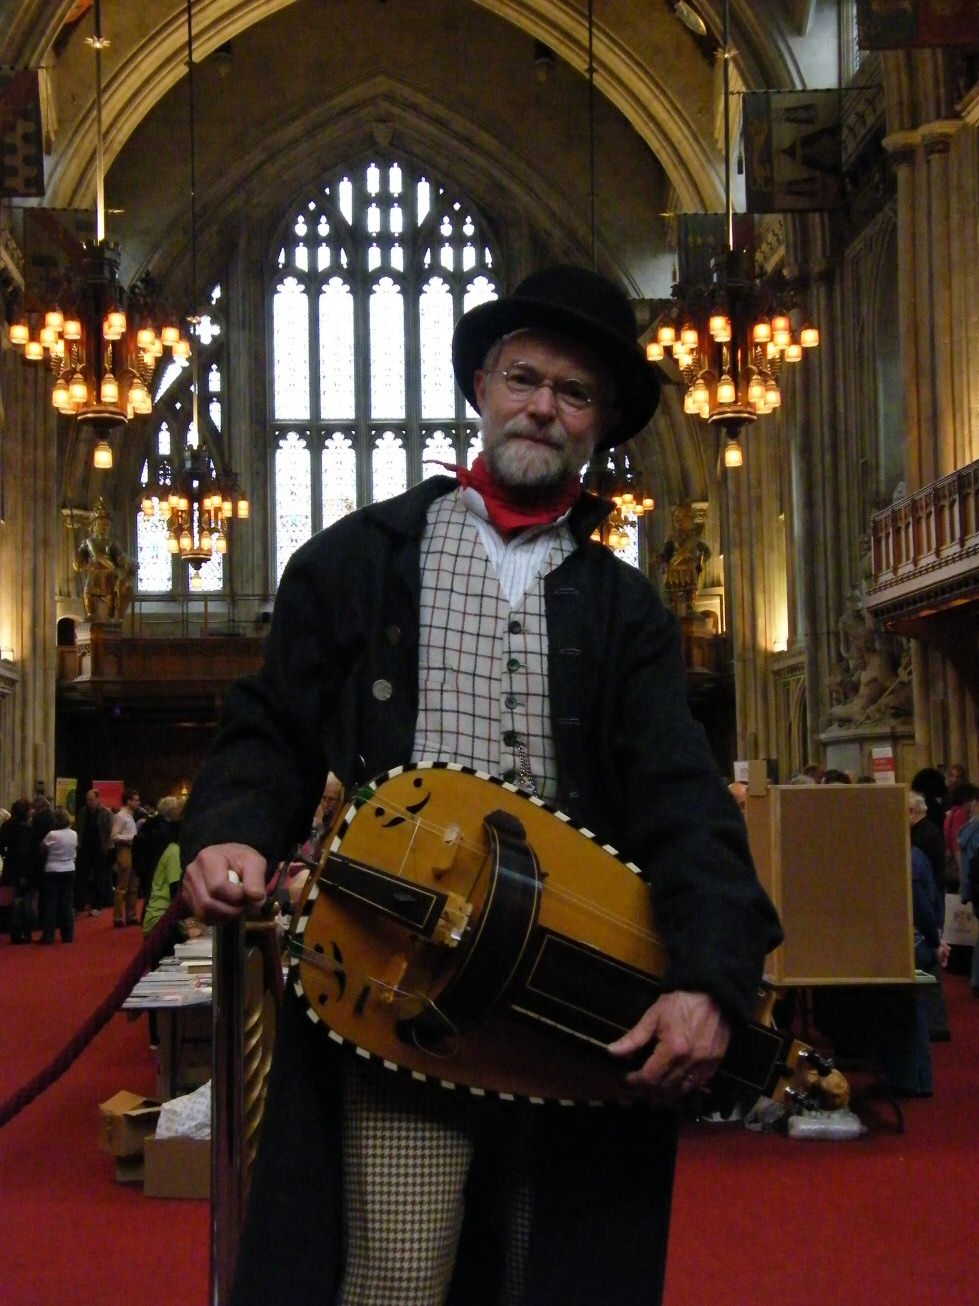 Hurdy-gurdy and me in the London Guildhall